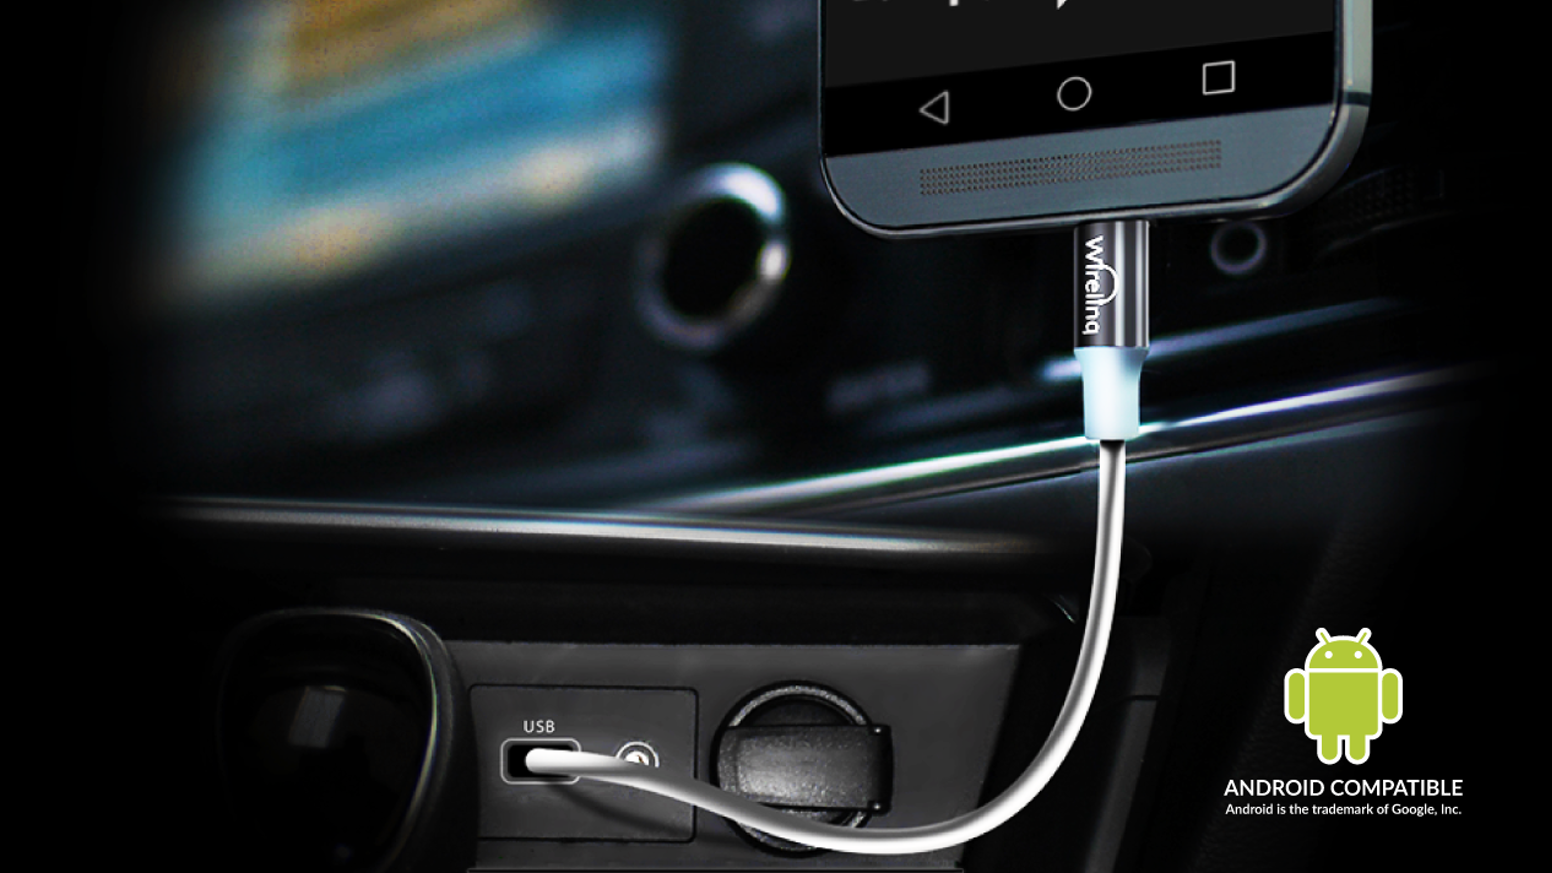 Connects your Android phone to the car stereo for music, controls and text display.  For more information, go to gromaudio.com/wirelinq or click on link below.